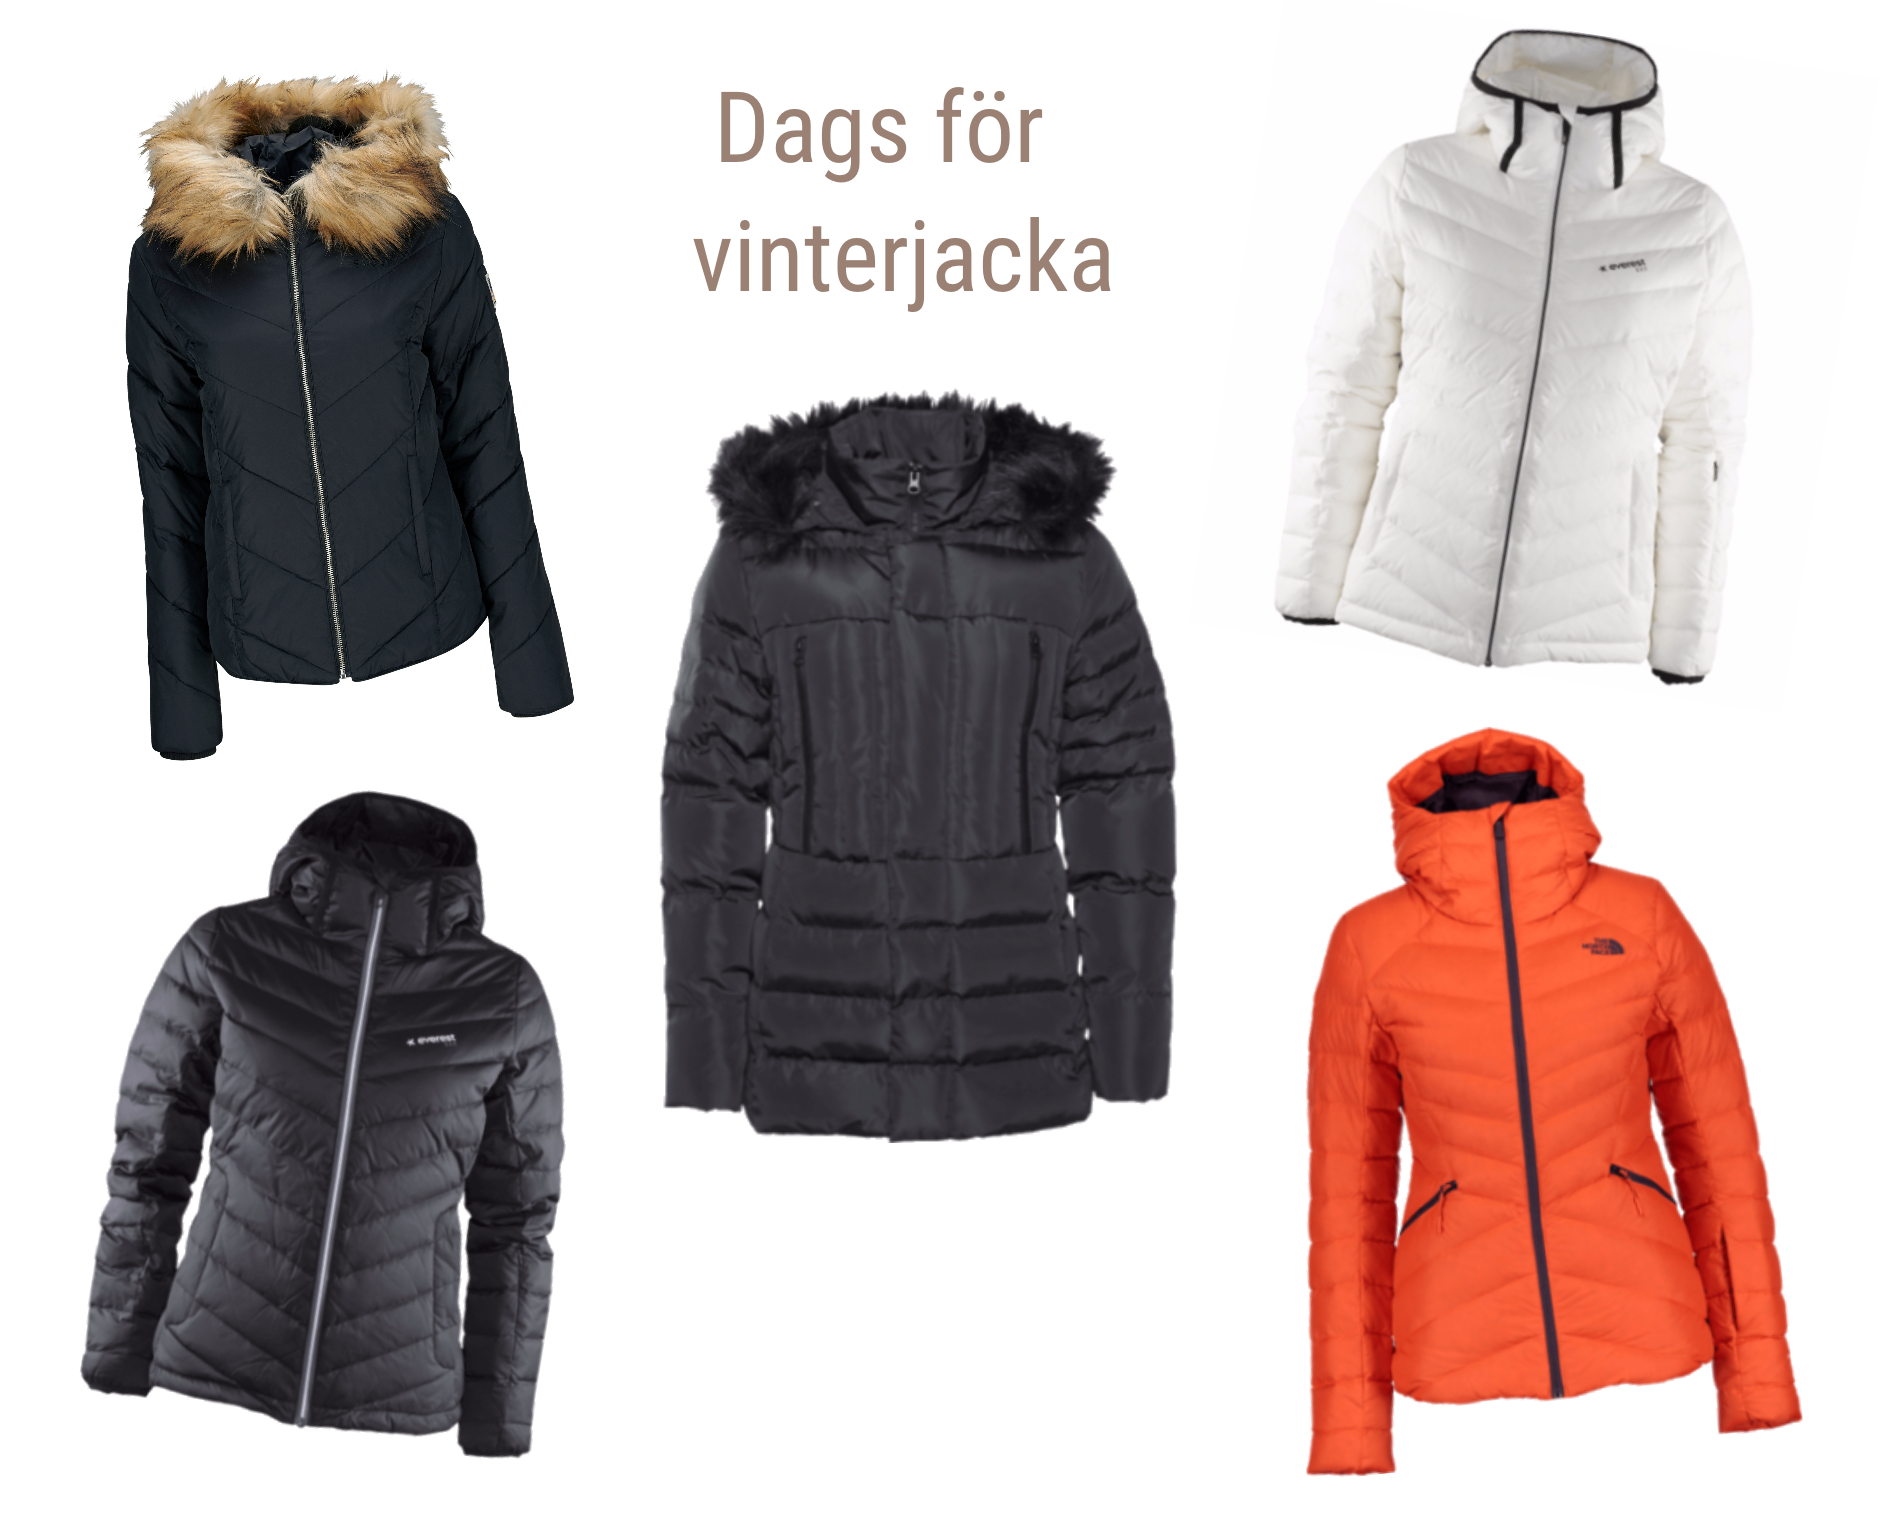 Get dressed for winter